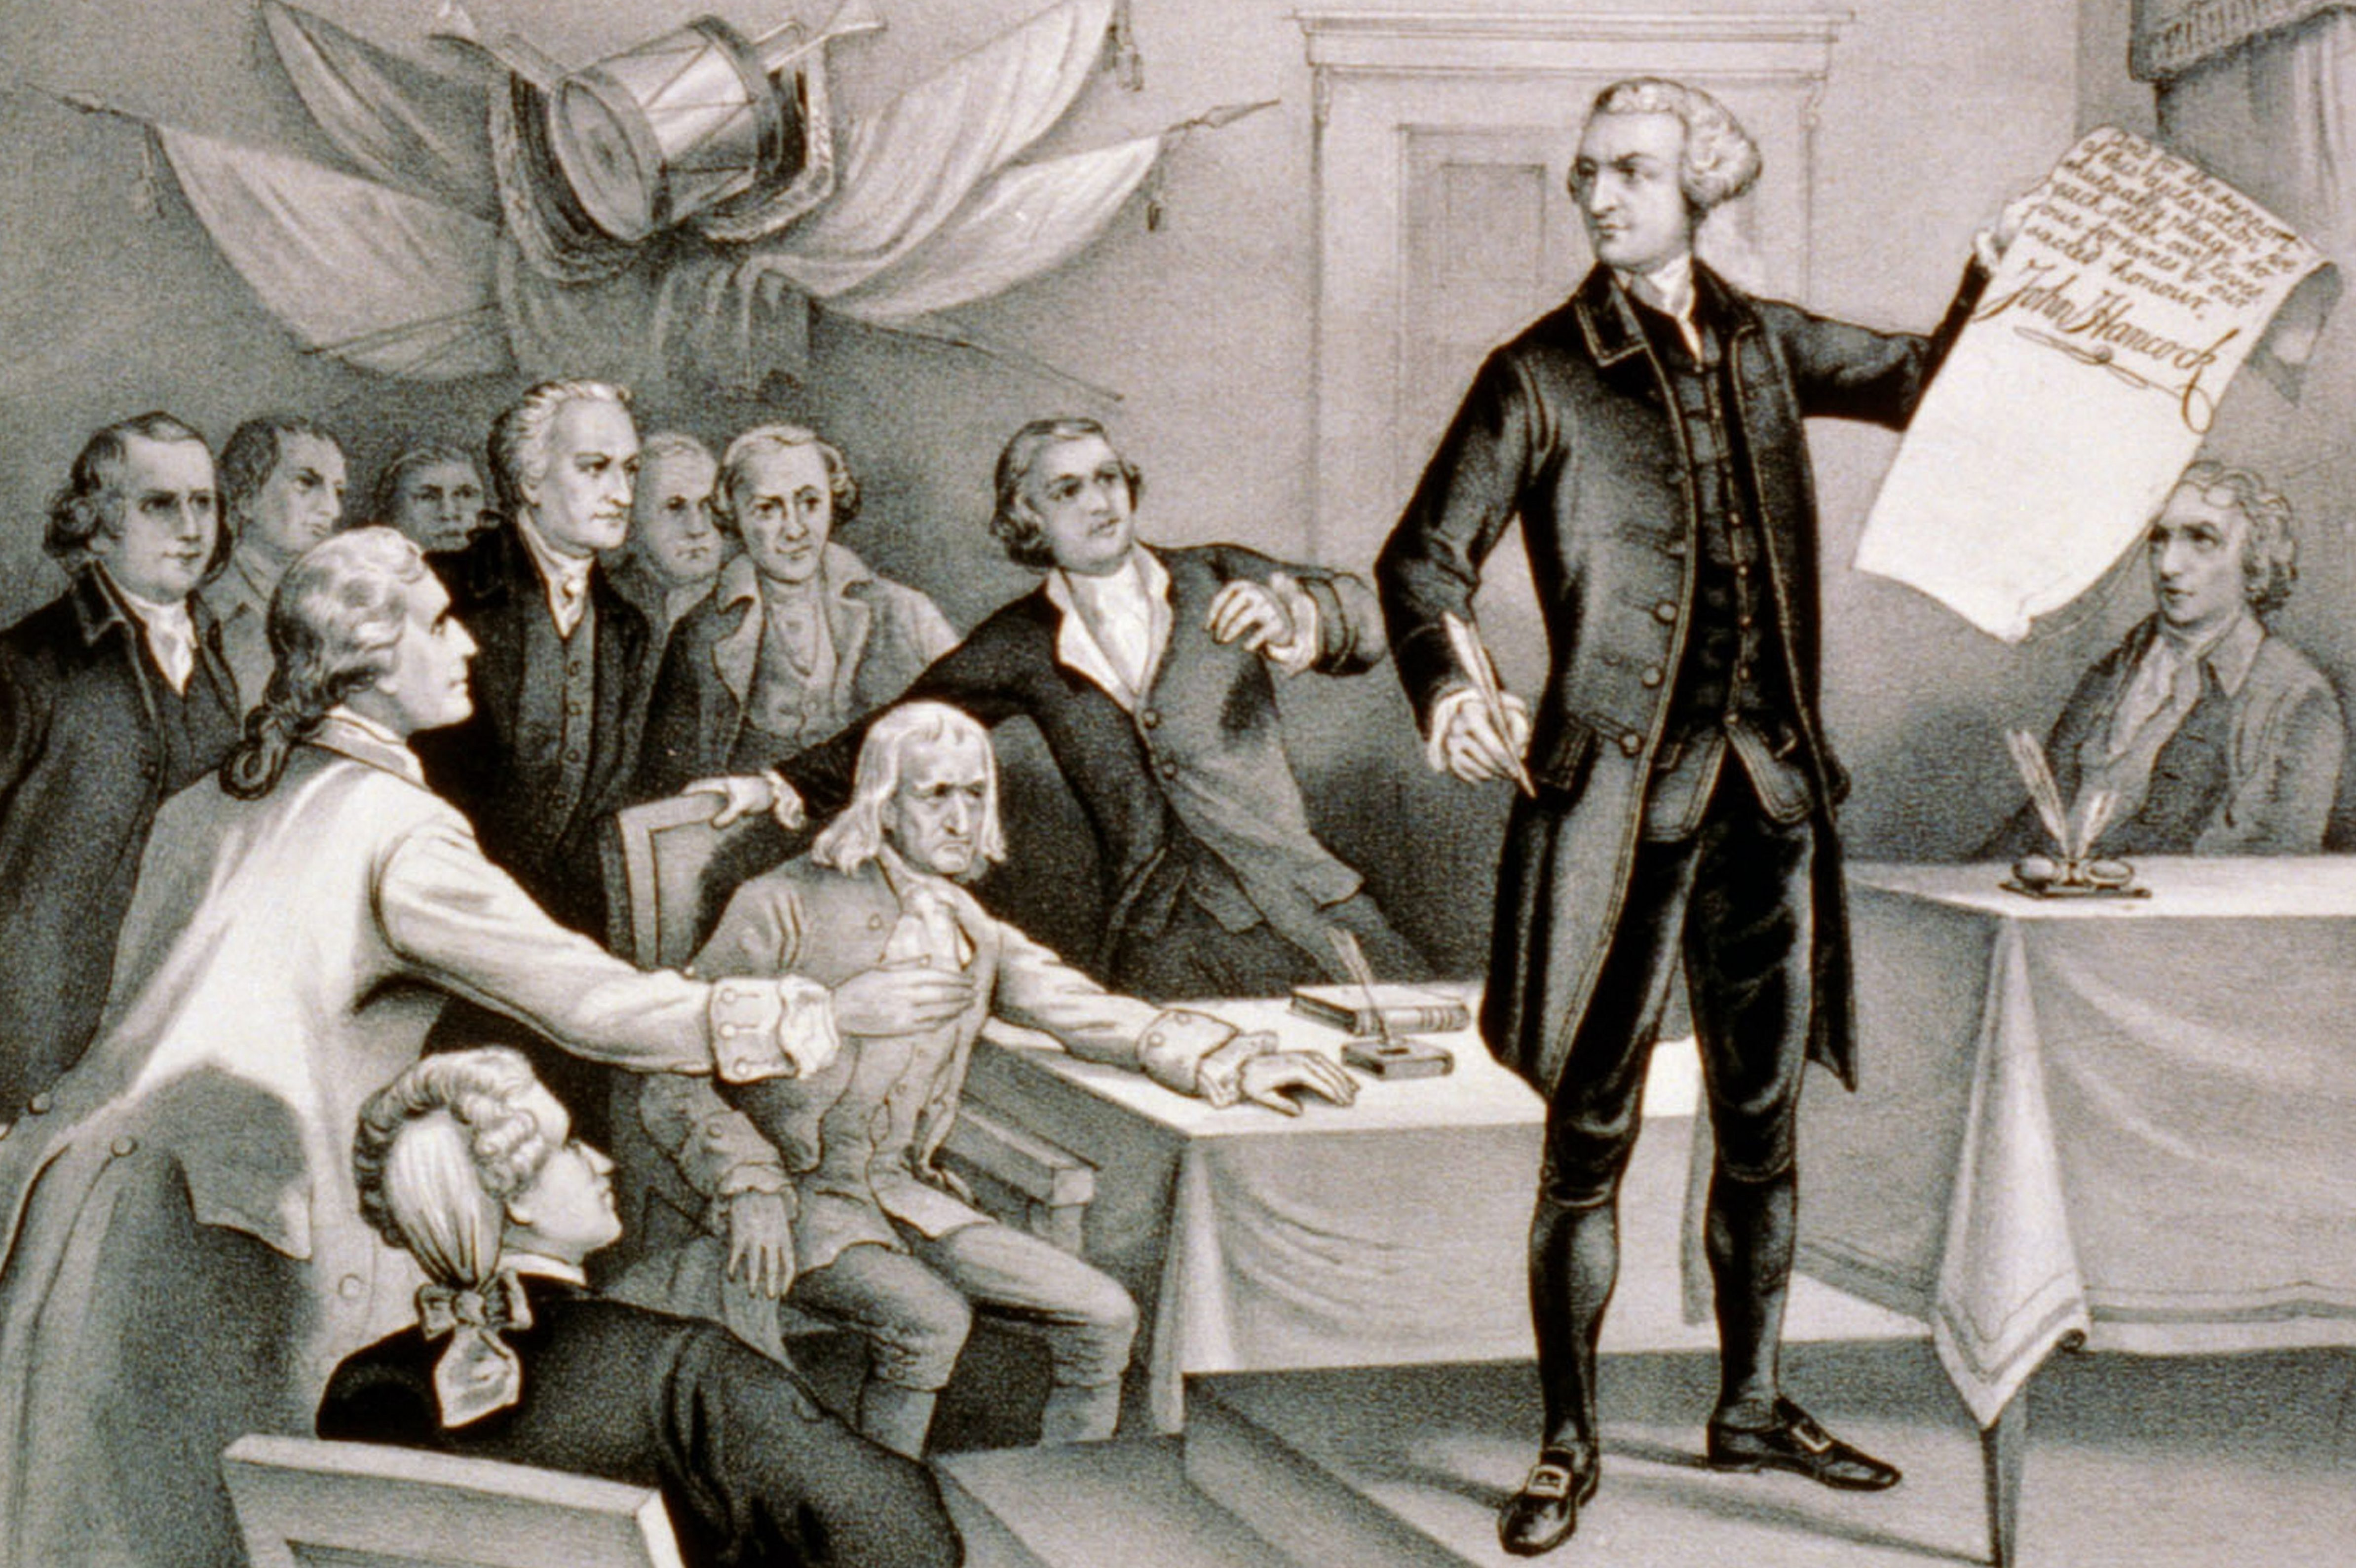 Mandatory Credit: Photo by Universal History Archive/UIG/Shutterstock (4425736a) John Hancock's defiance on July 4th 1776. He served as president of the Second Continental Congress and was the first and third Governor of the Commonwealth of Massachusetts. He is remembered for his large and stylish signature on the United States Declaration of Independence. VARIOUS